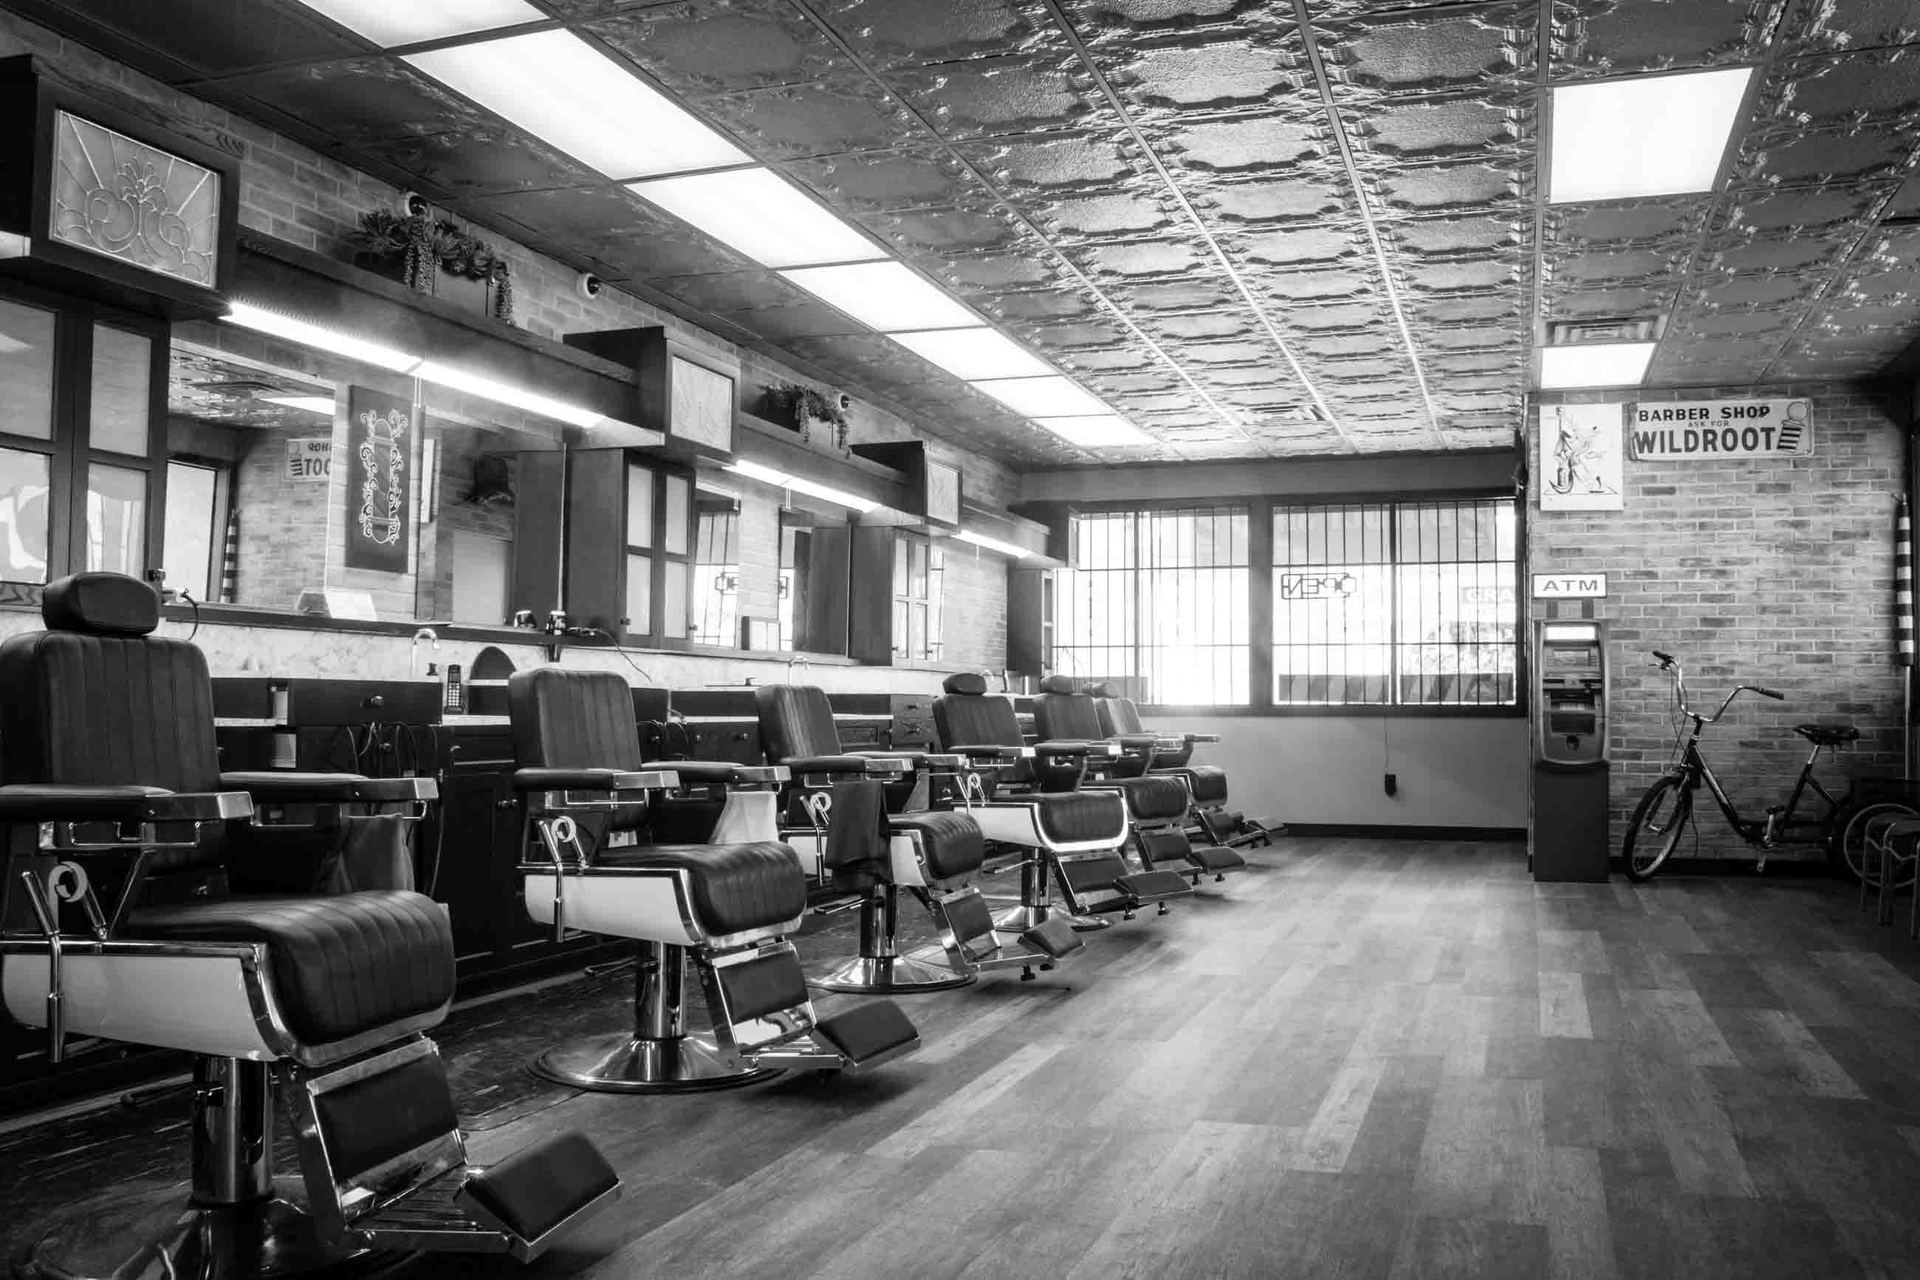 American Deluxe Barbershop Old Fashioned Luxury At Family Prices